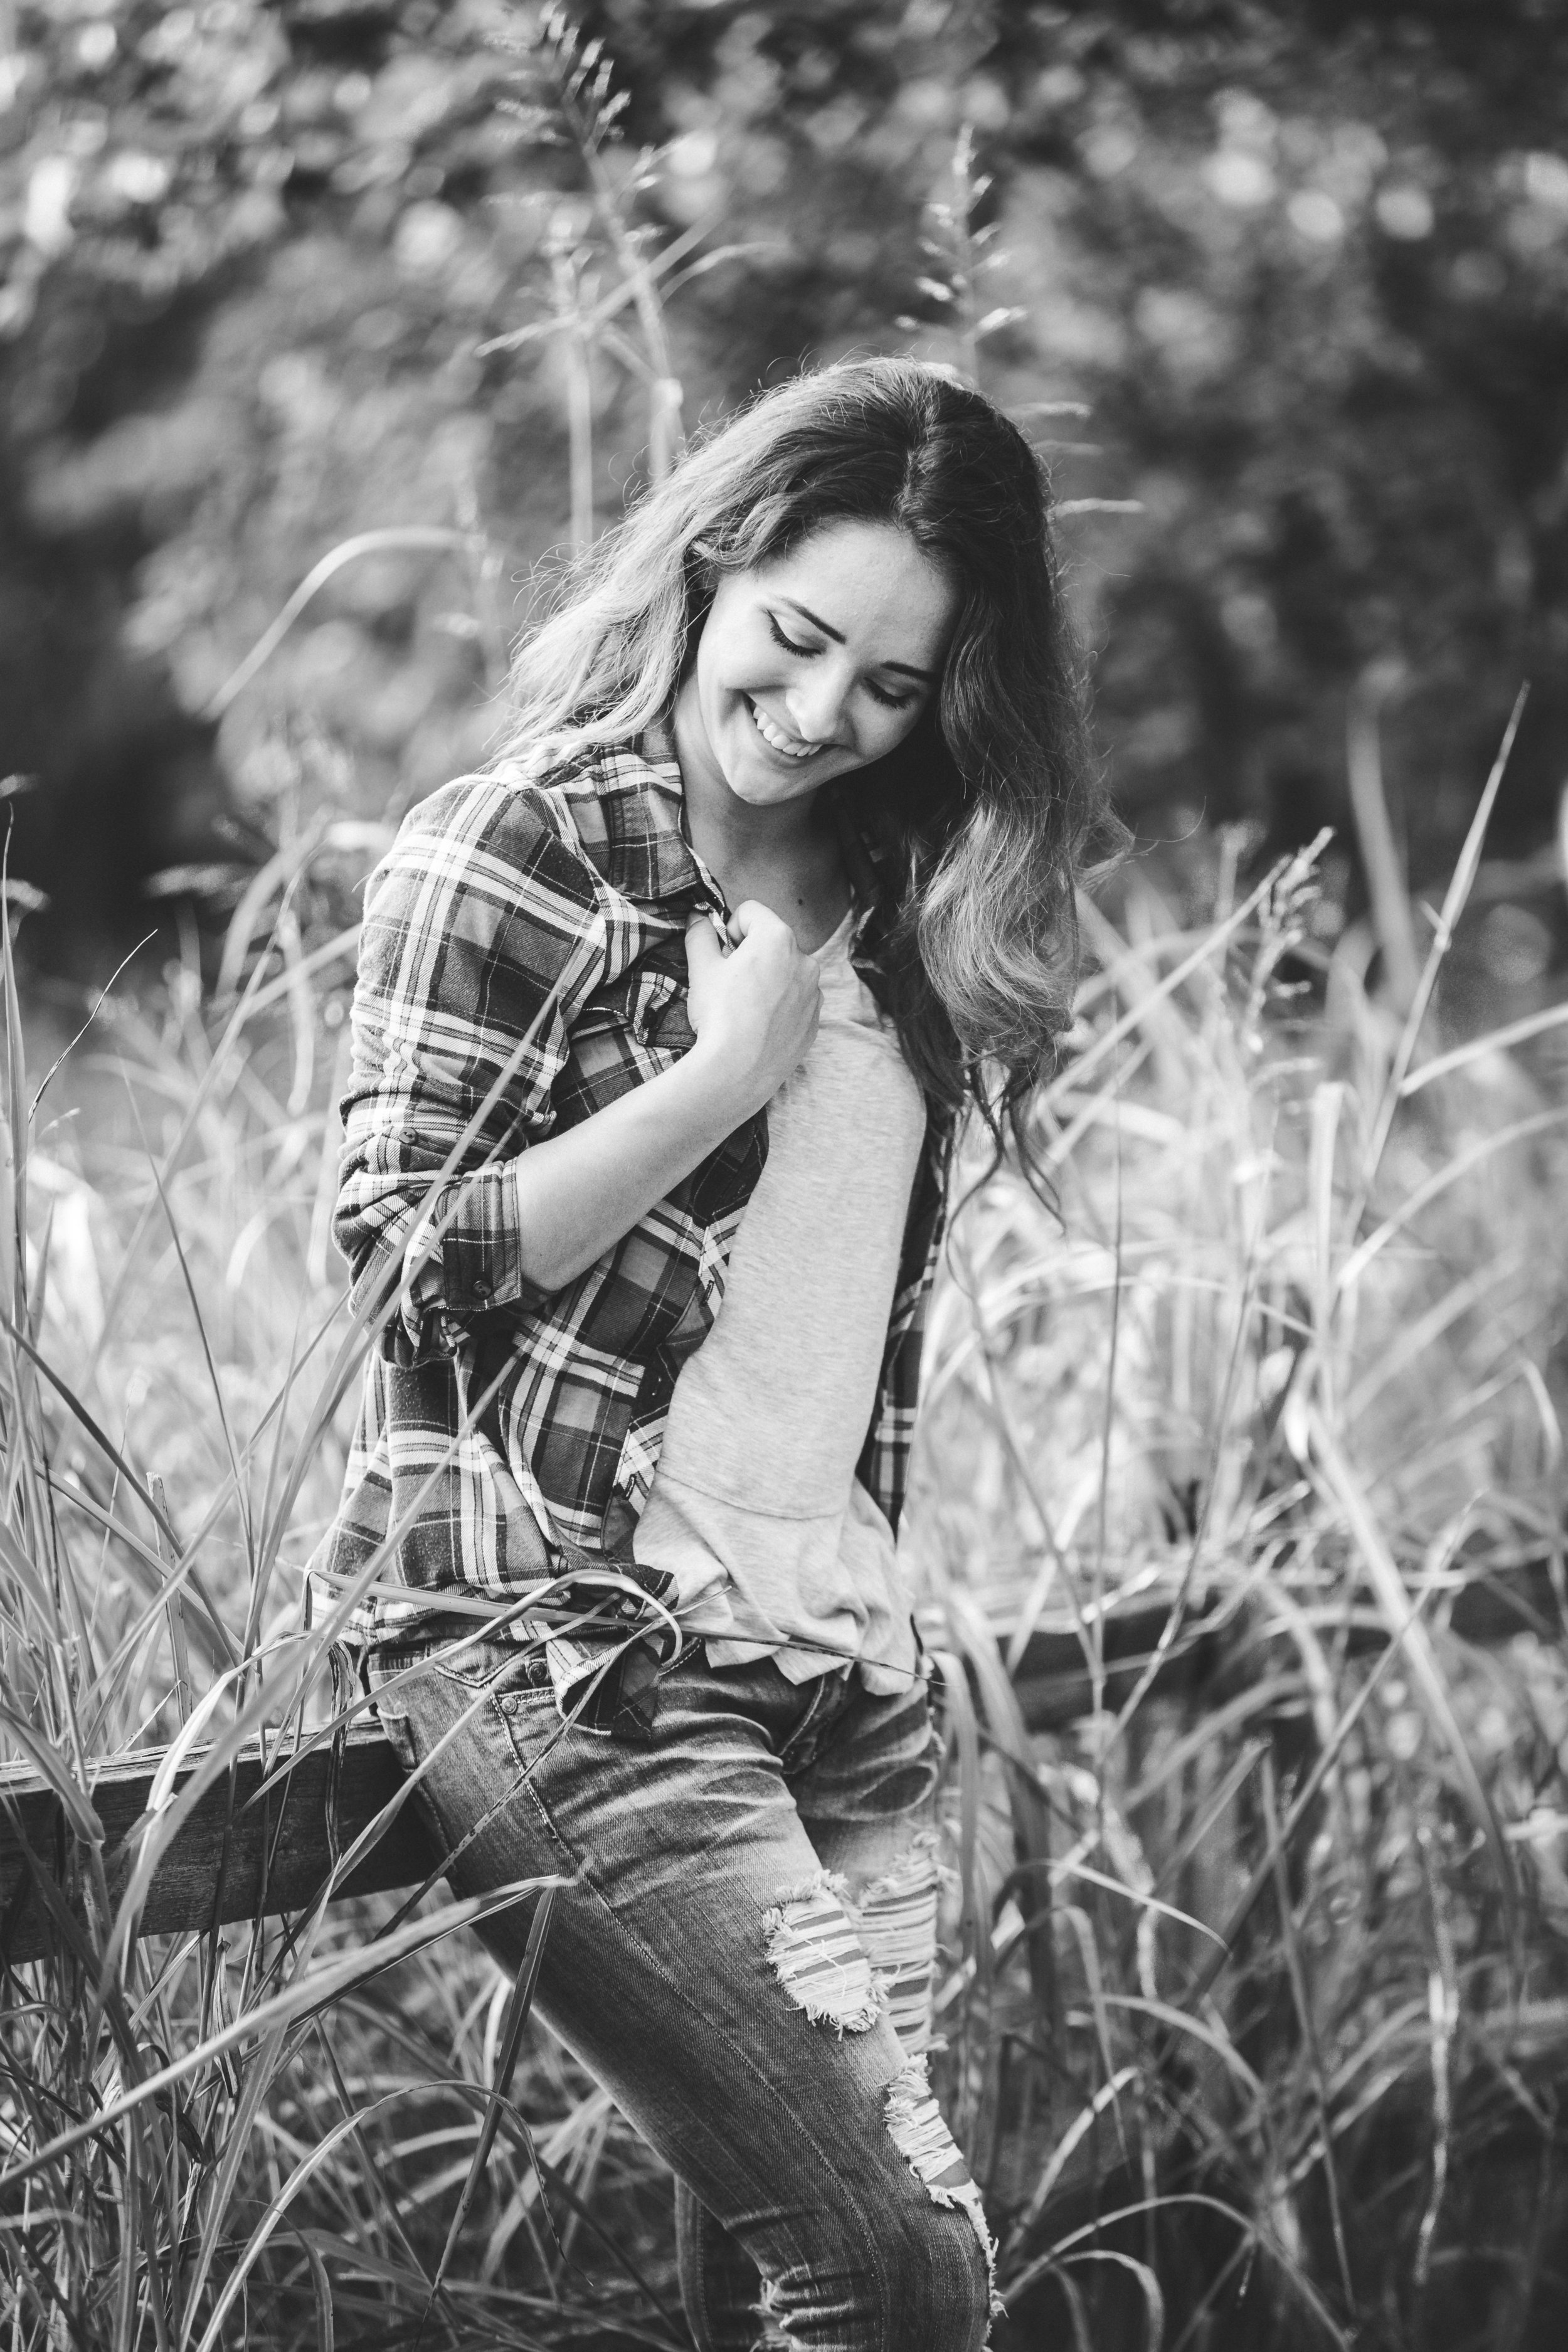 Black and white image of senior girl with long hair laughing and looking down while leaning against a wooden fence. Amanda Lynn Oklahoma Senior Photographer.